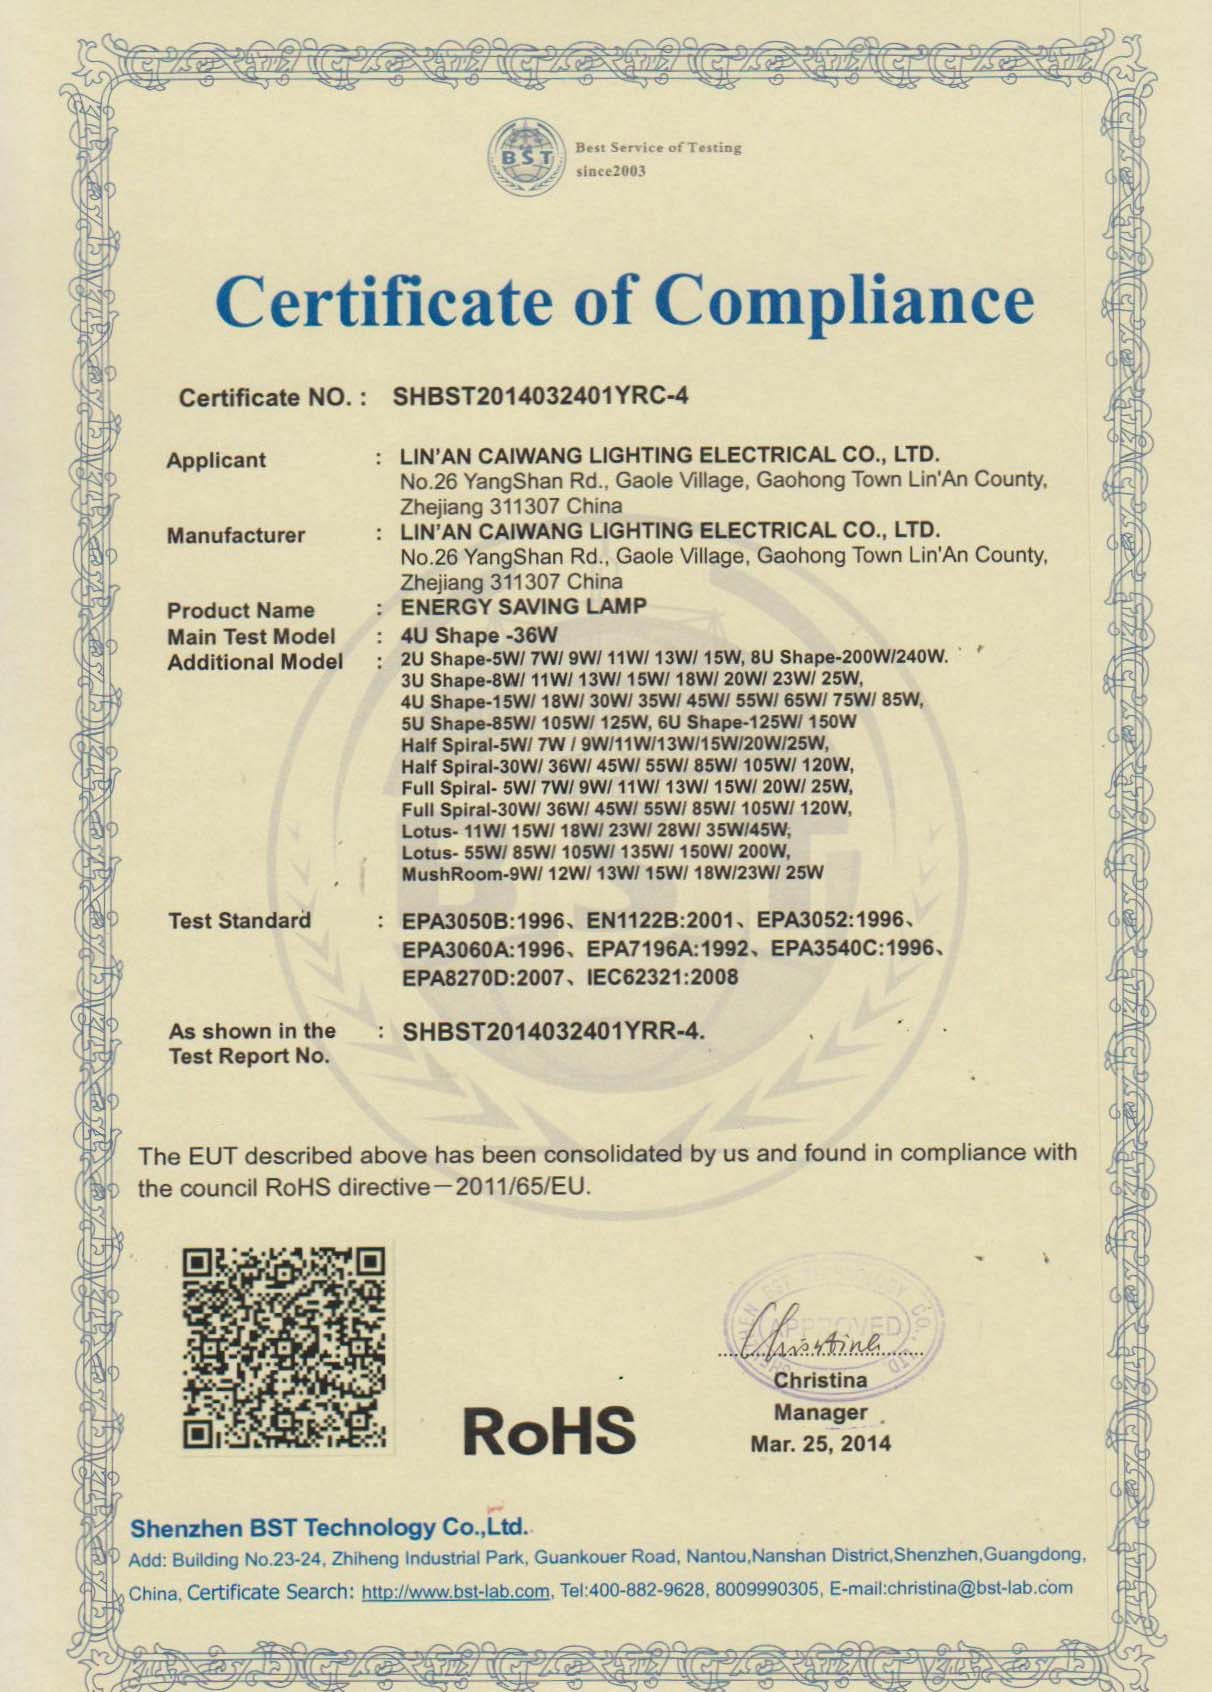 RoHS Certificate for Energy Saving Lamp